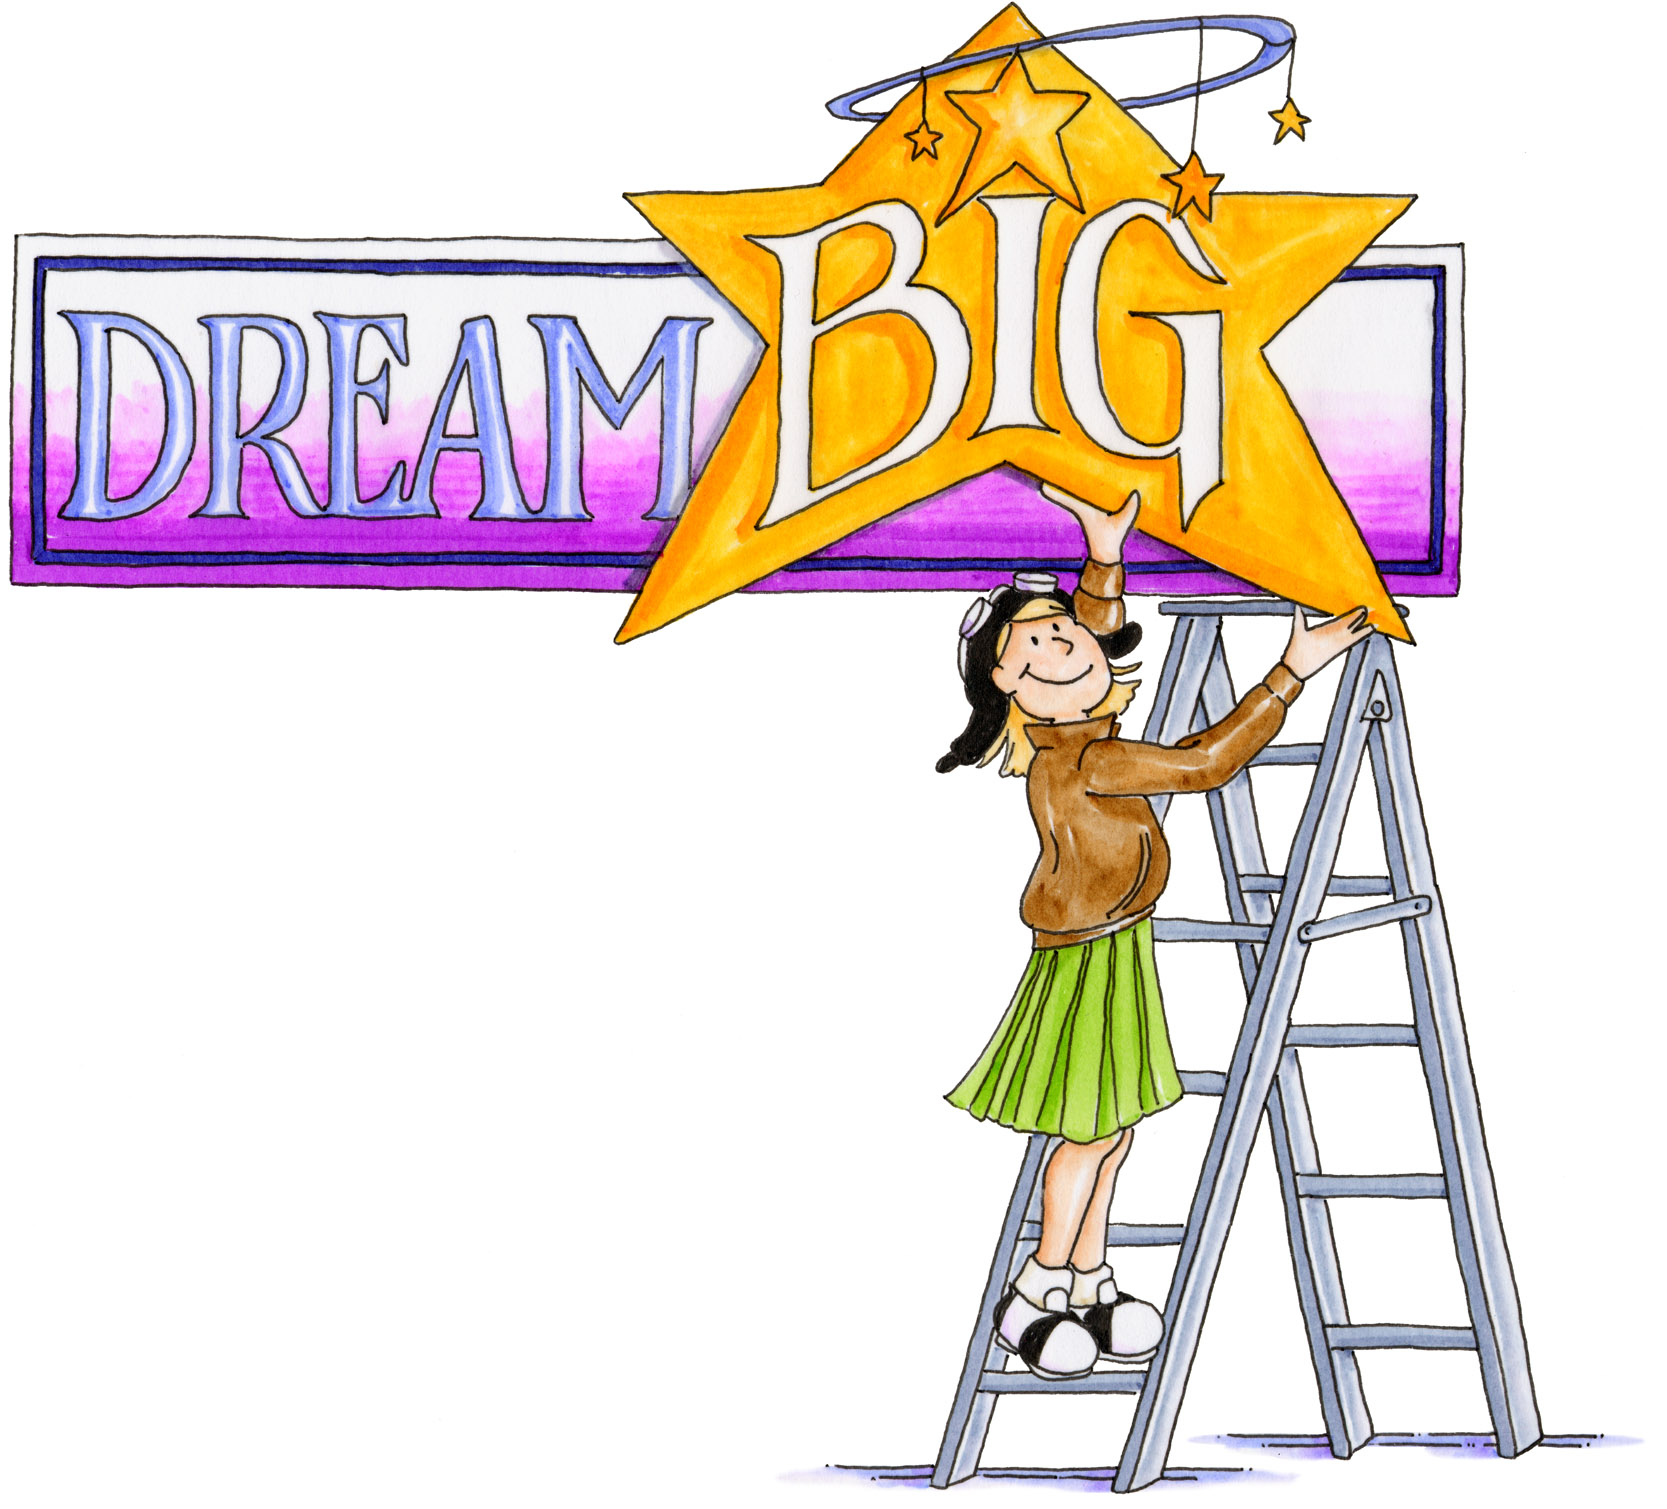 goal setting kl robertson daly s blog dream clipart black white dream clip art free images